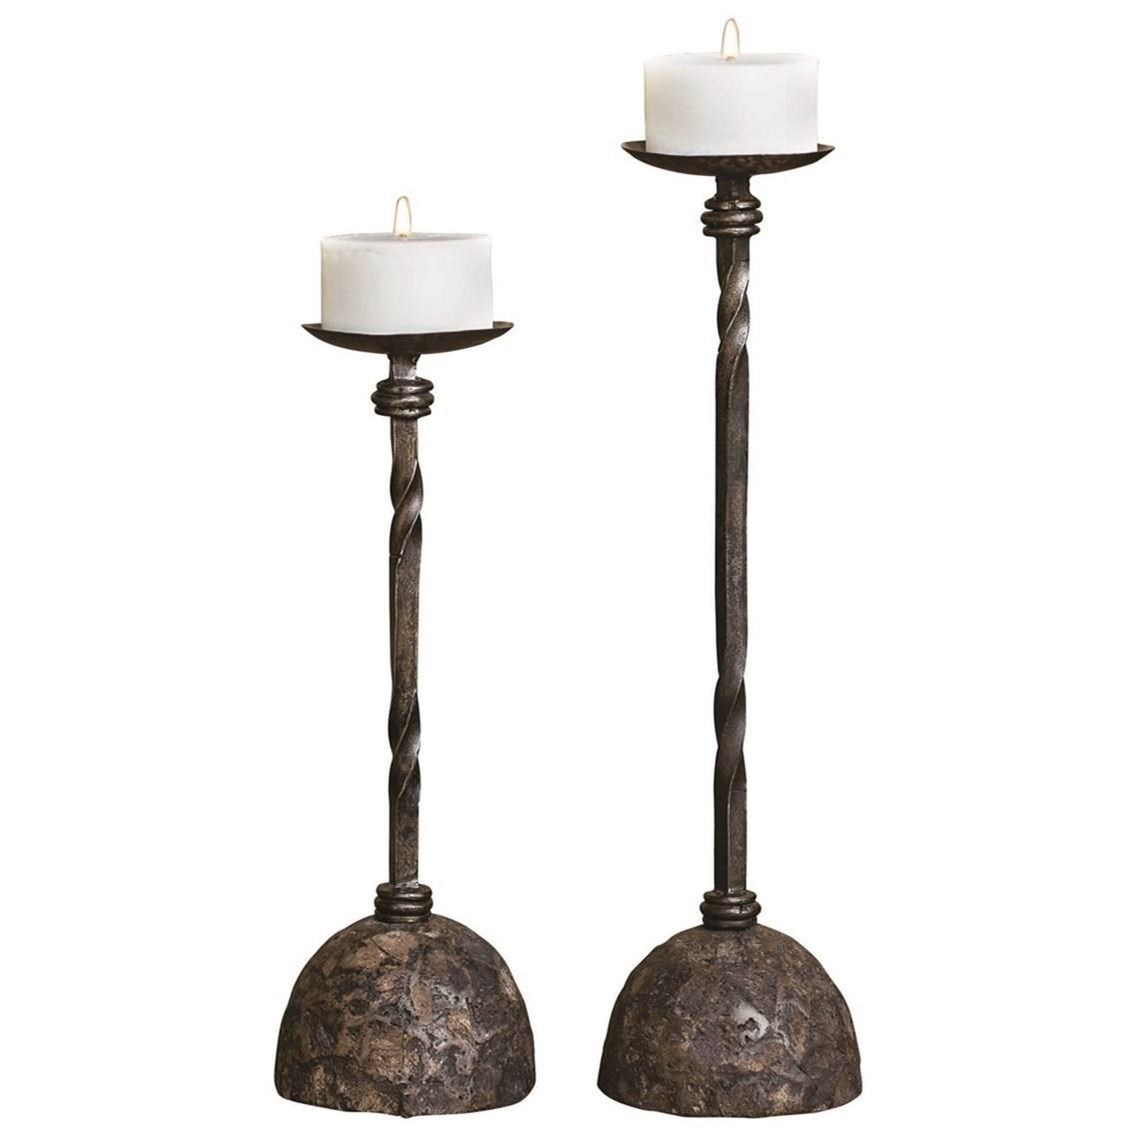 Accessories - Candle Holders Keegan Tall Candleholders, Set/2 by Uttermost at Mueller Furniture